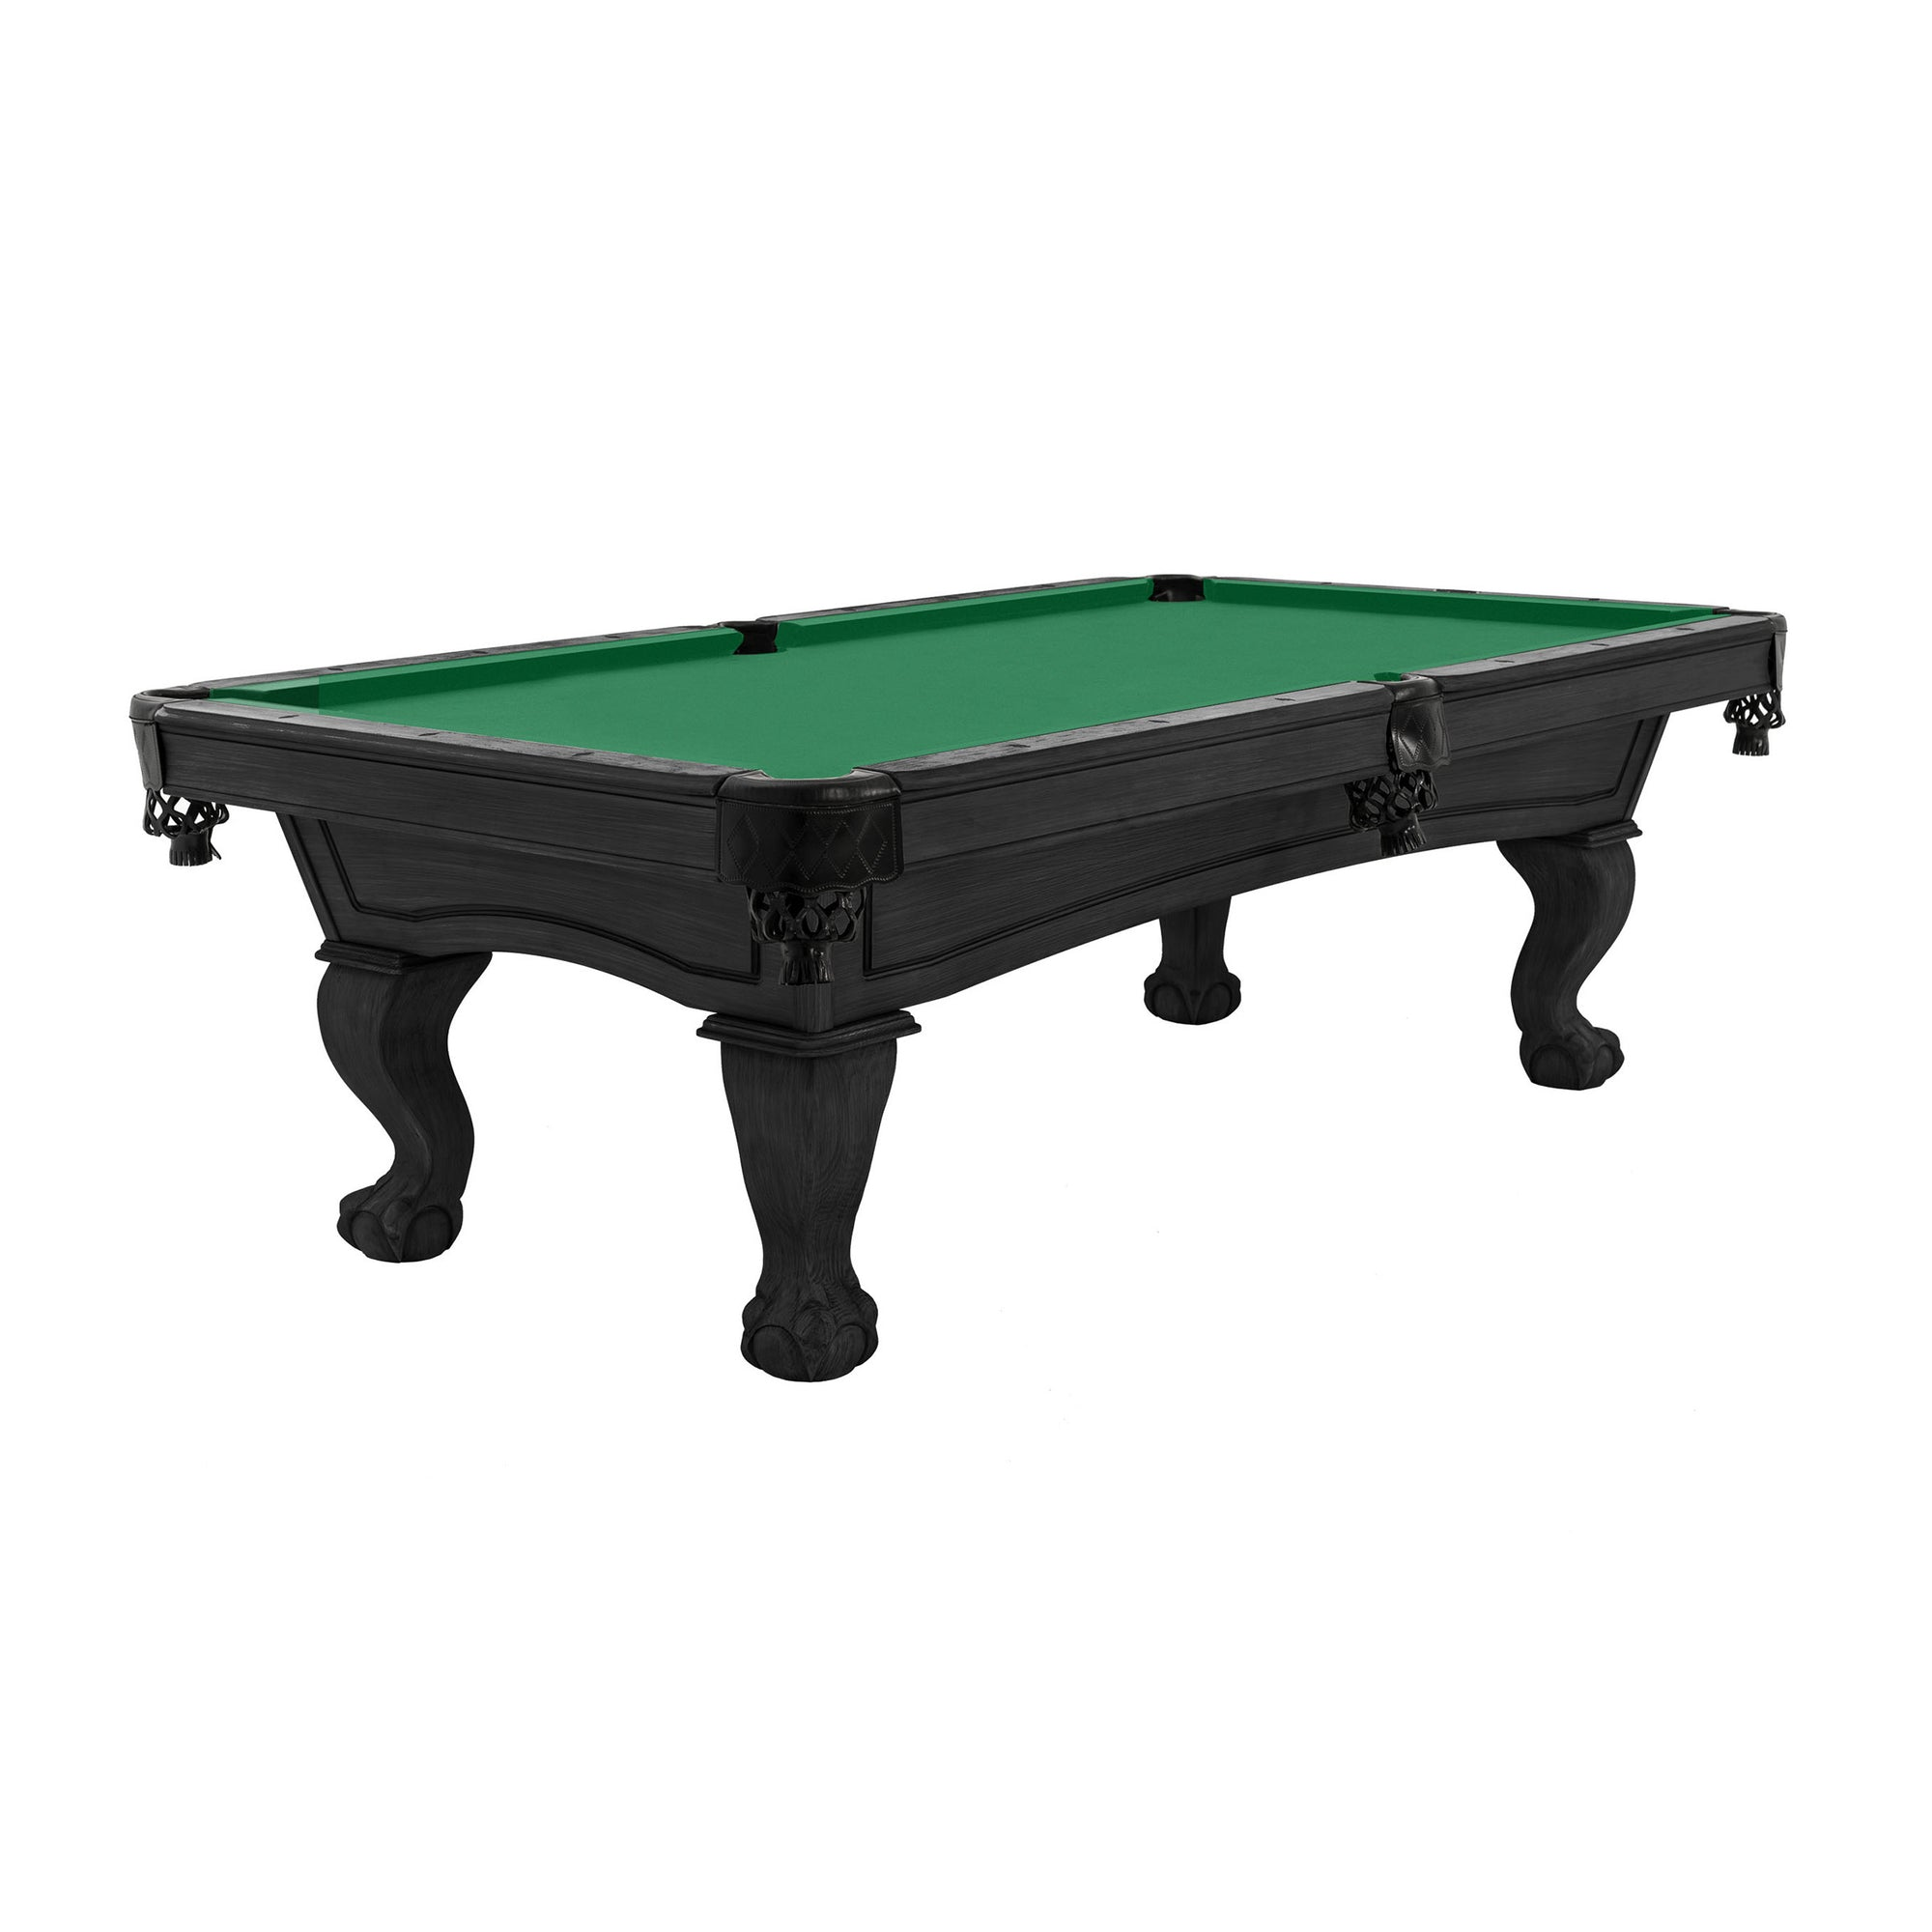 The Resolute Pool Table, Kona with Ball and Claw Legs